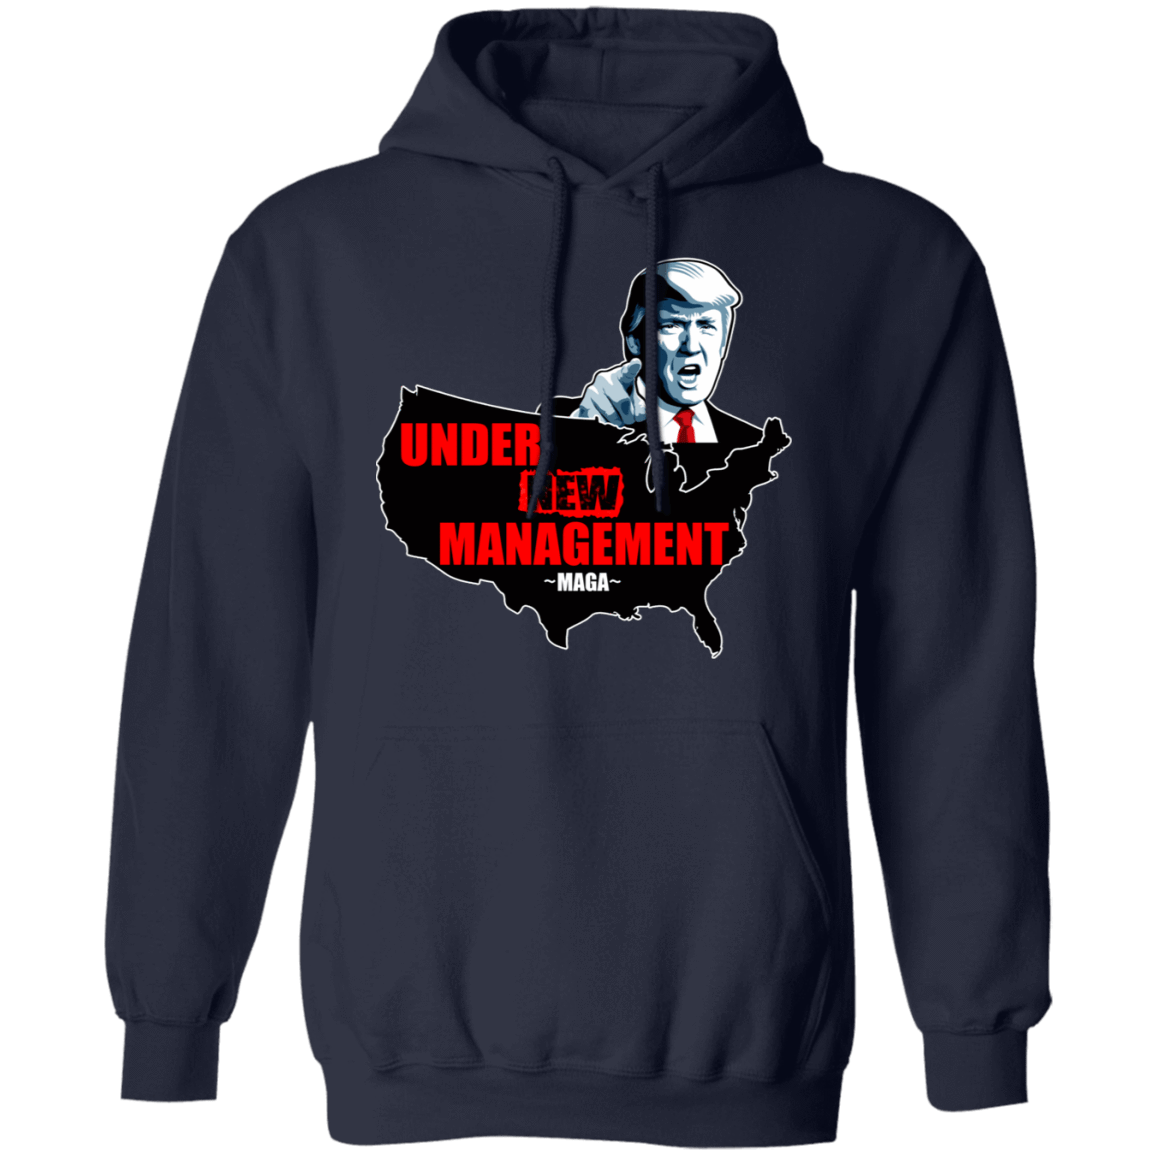 Under New Management #Maga T-Shirts, Hoodies, Tank 541-4742-80393638-23135 - Tee Ript